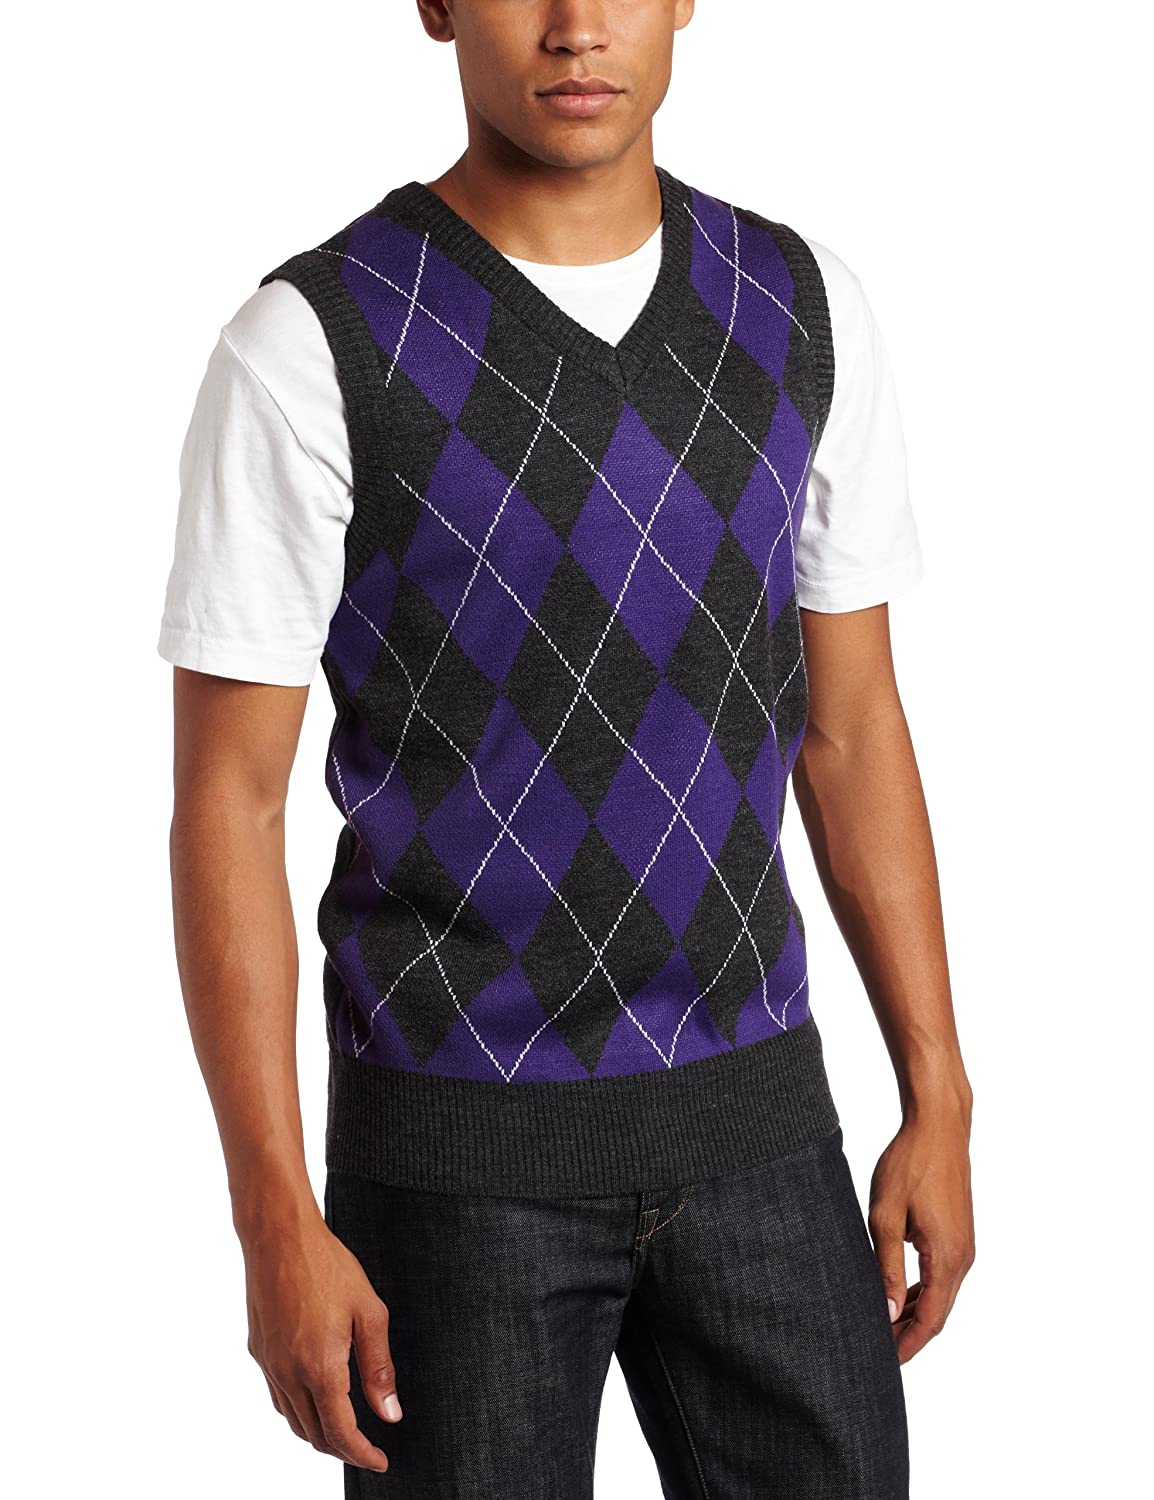 Amazon.com: Southpole Men's Argyle Sweater Vest, Purple, Medium ...